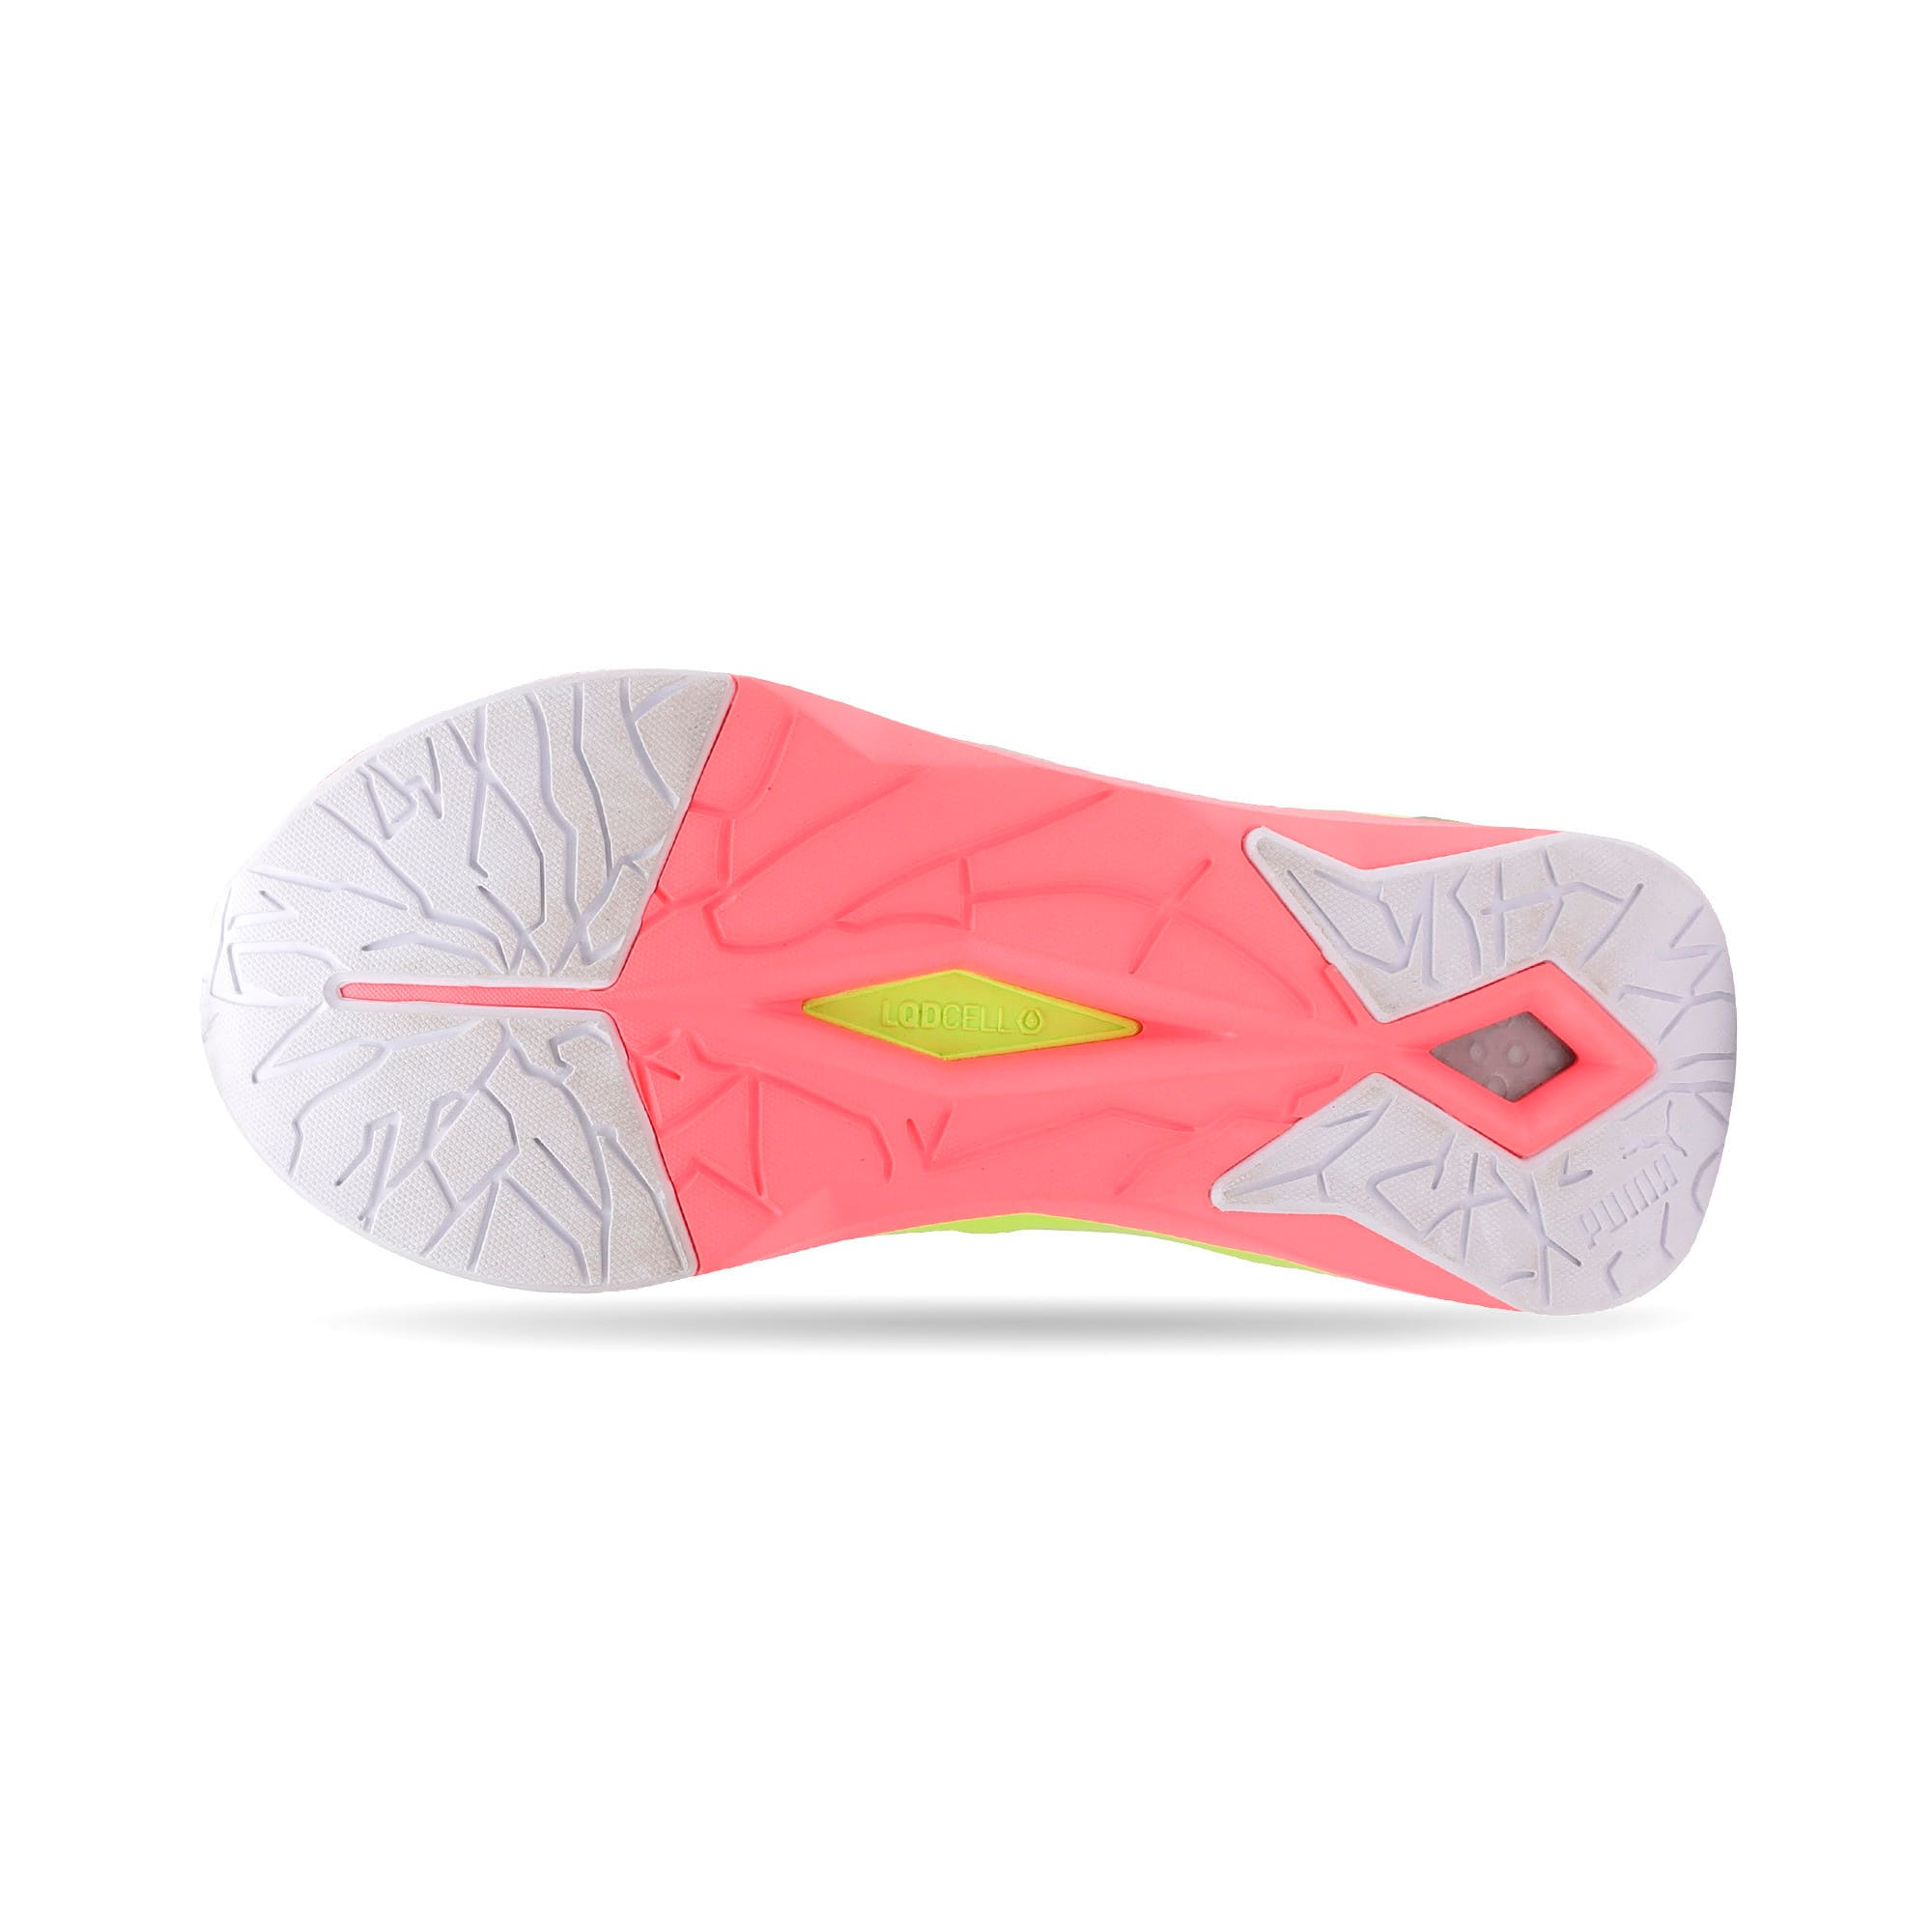 Thumbnail 7 of LQDCell Shatter XT Women's Training Shoes, Puma White-Pink Alert, medium-IND